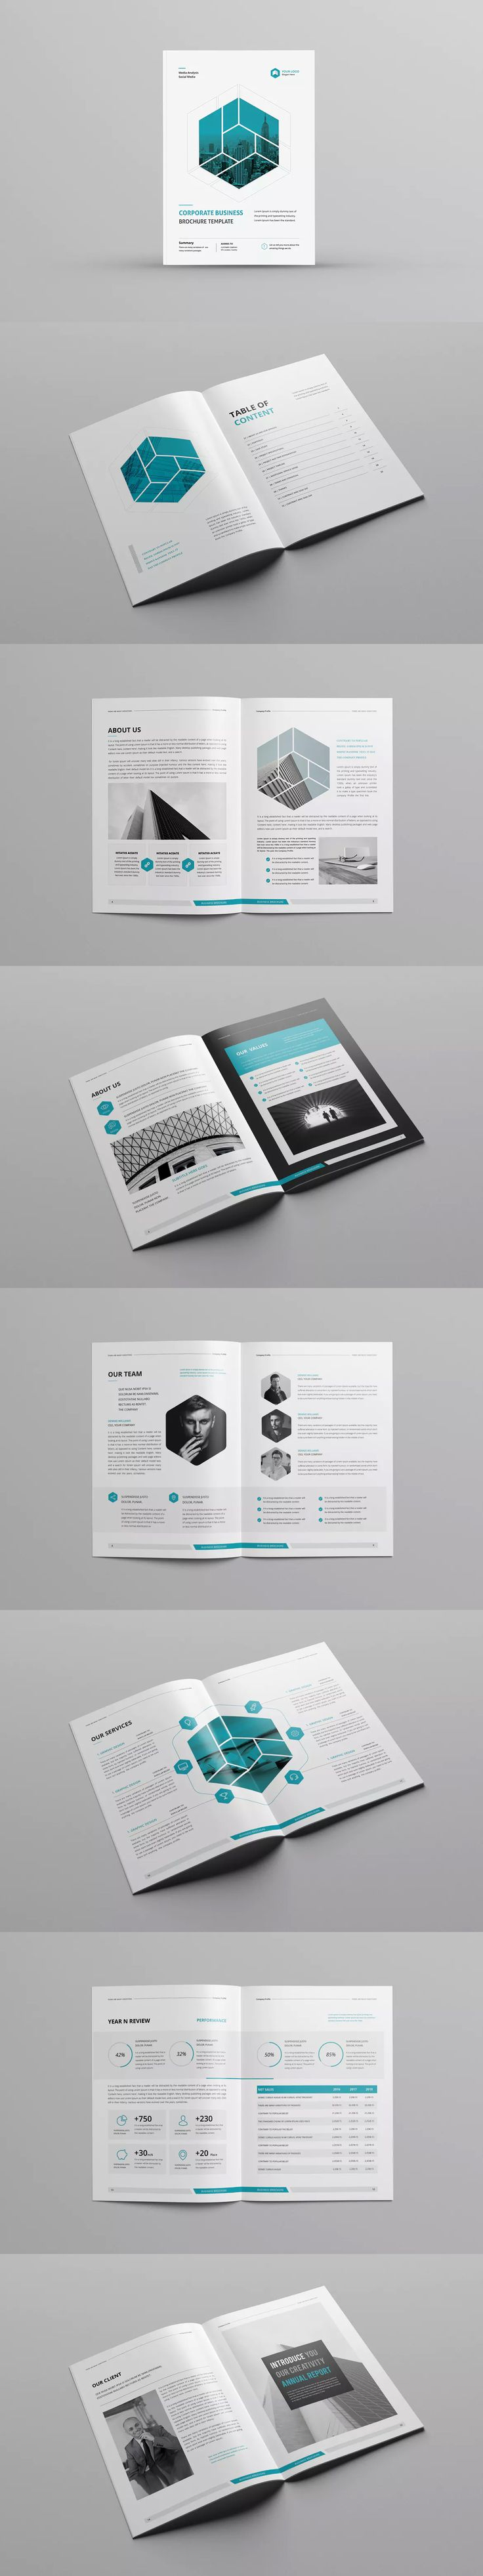 Company Profile Template InDesign INDD - A4